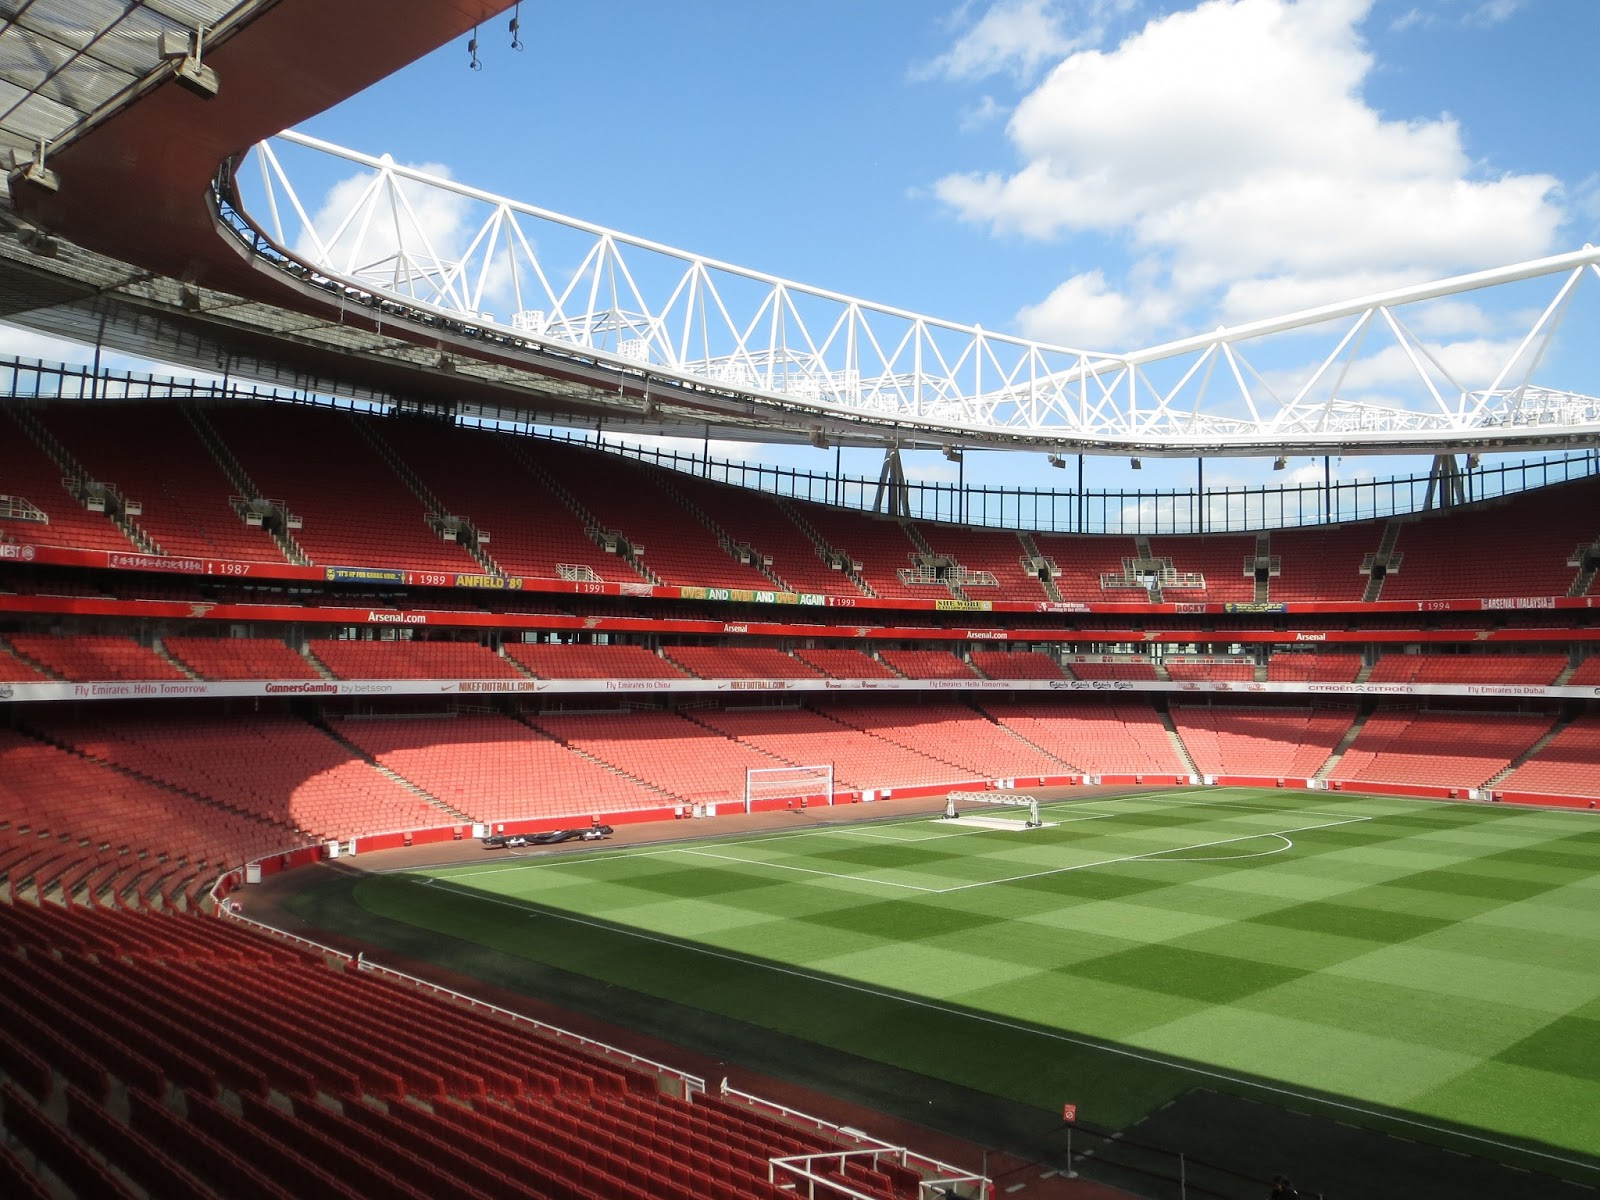 londinoupolis: The Emirates Stadium